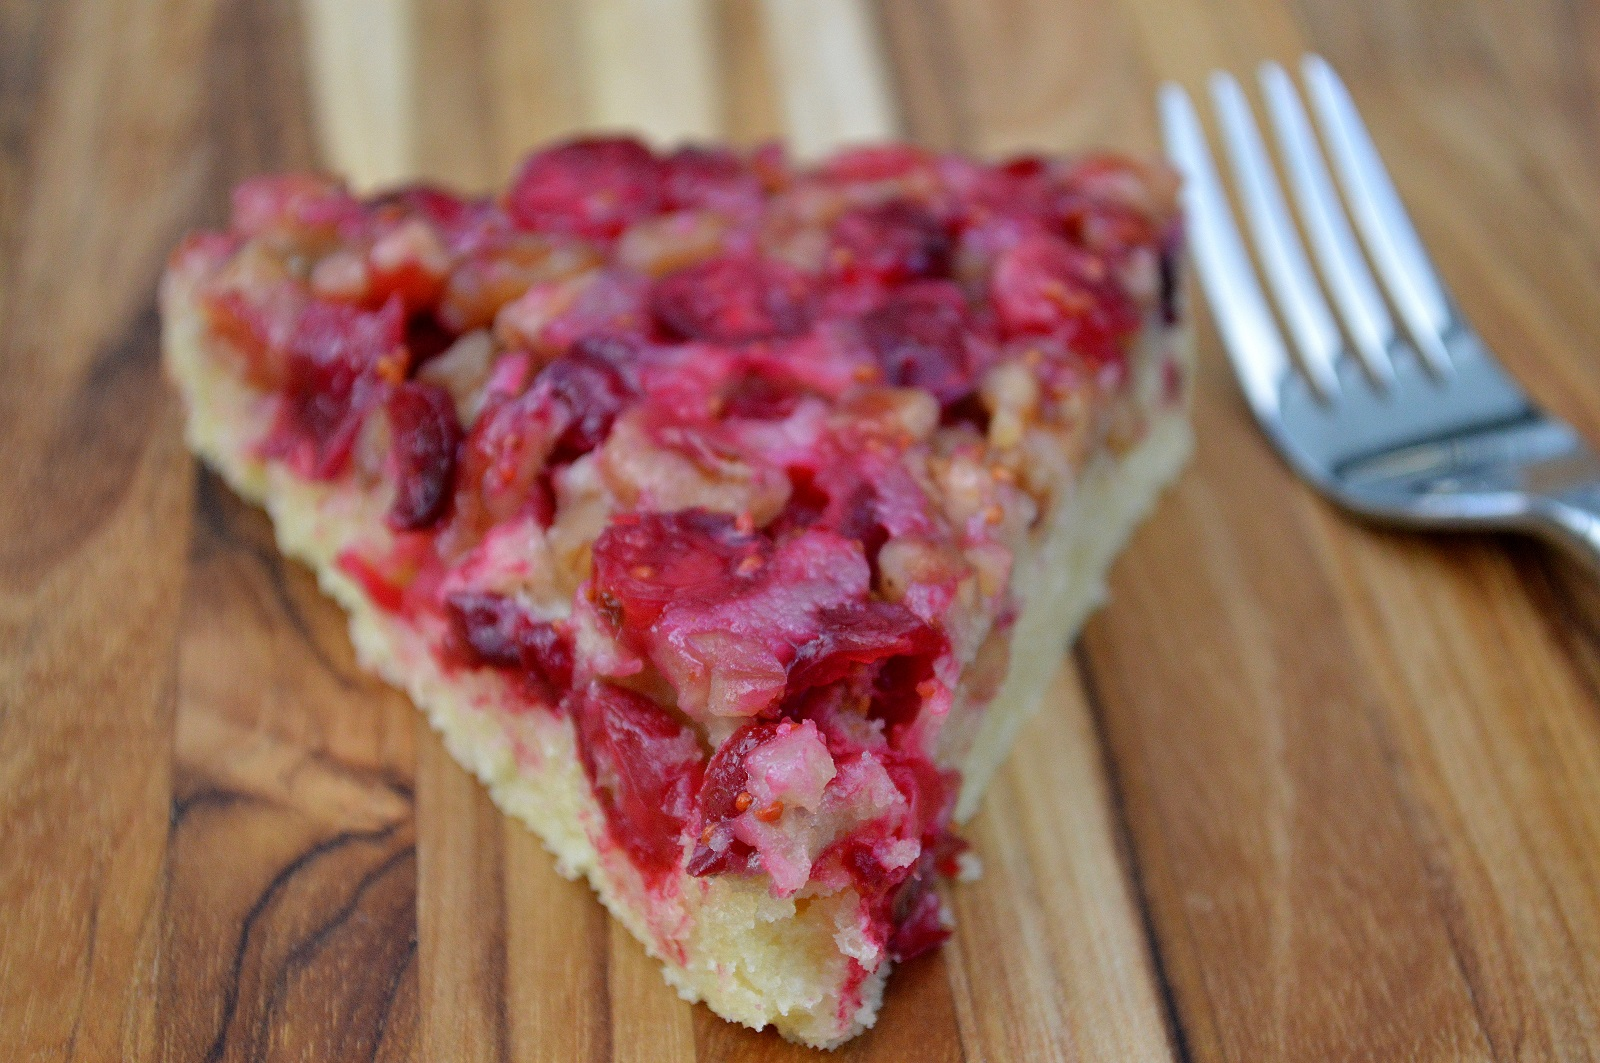 The easiest and most delicious Cranberry-Walnut Pie! It's a New England Vintage recipe called Nantucket Pie, its so pretty & festive!